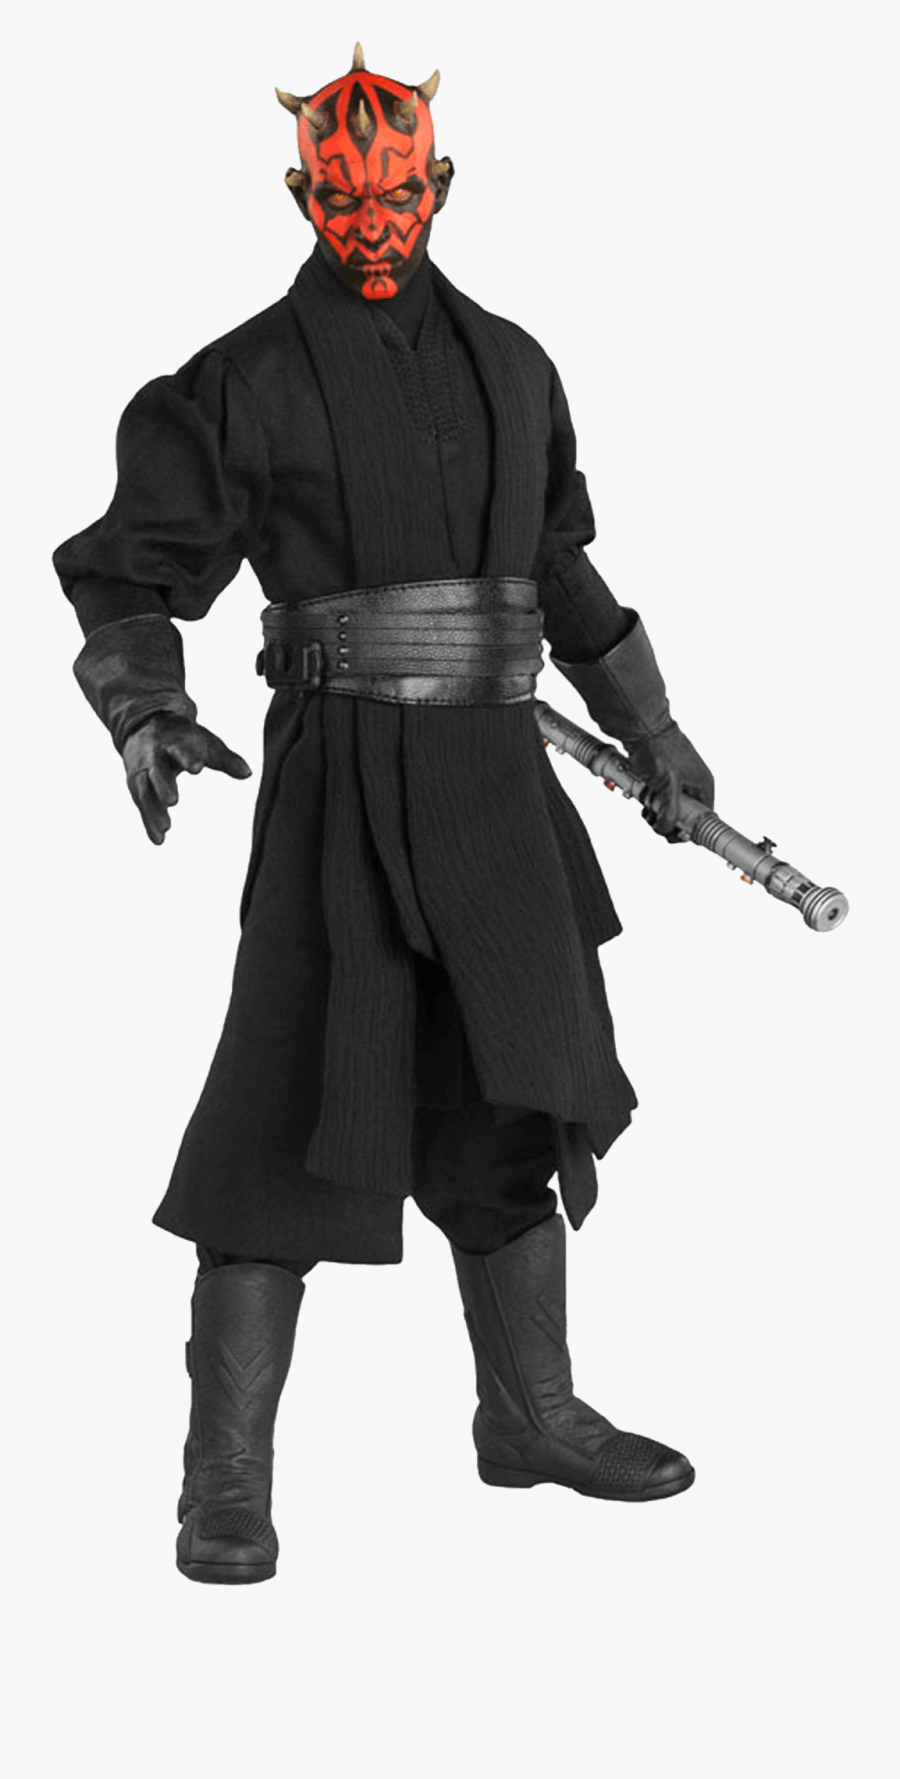 Darth Maul Anakin Skywalker Palpatine Star Wars Sith - Darth Maul Star Wars Png, Transparent Clipart